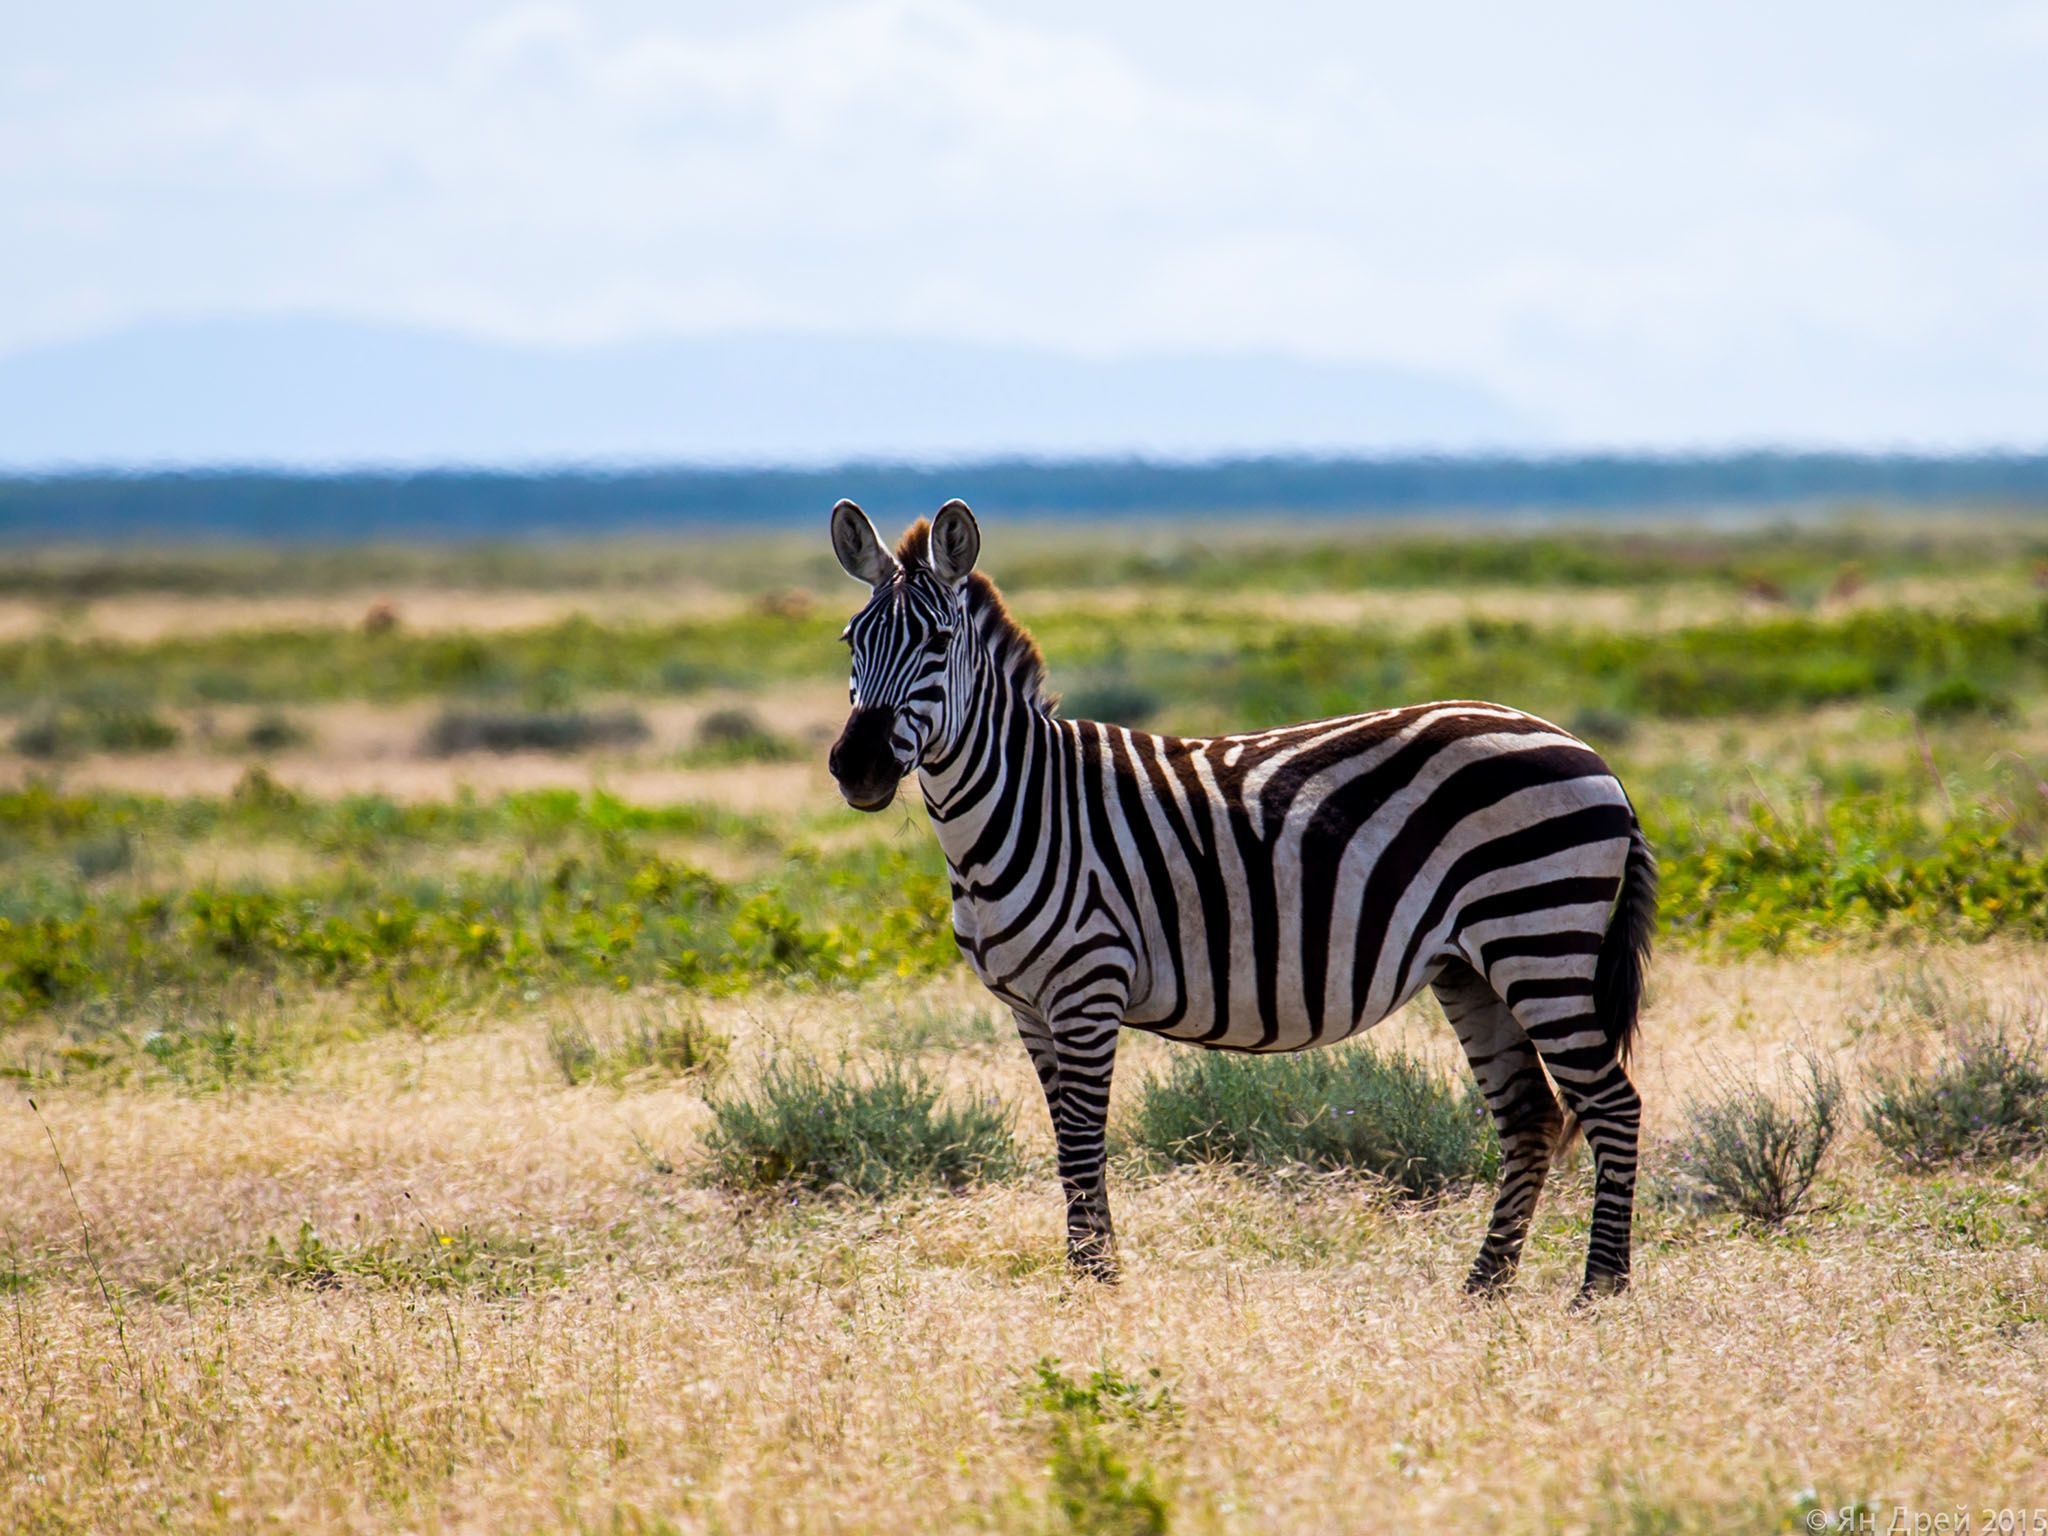 Tanzania, Africa: Solo Zebra on the Serengeti plains. This image is from MyGrations. [Photo of the day - می 2016]